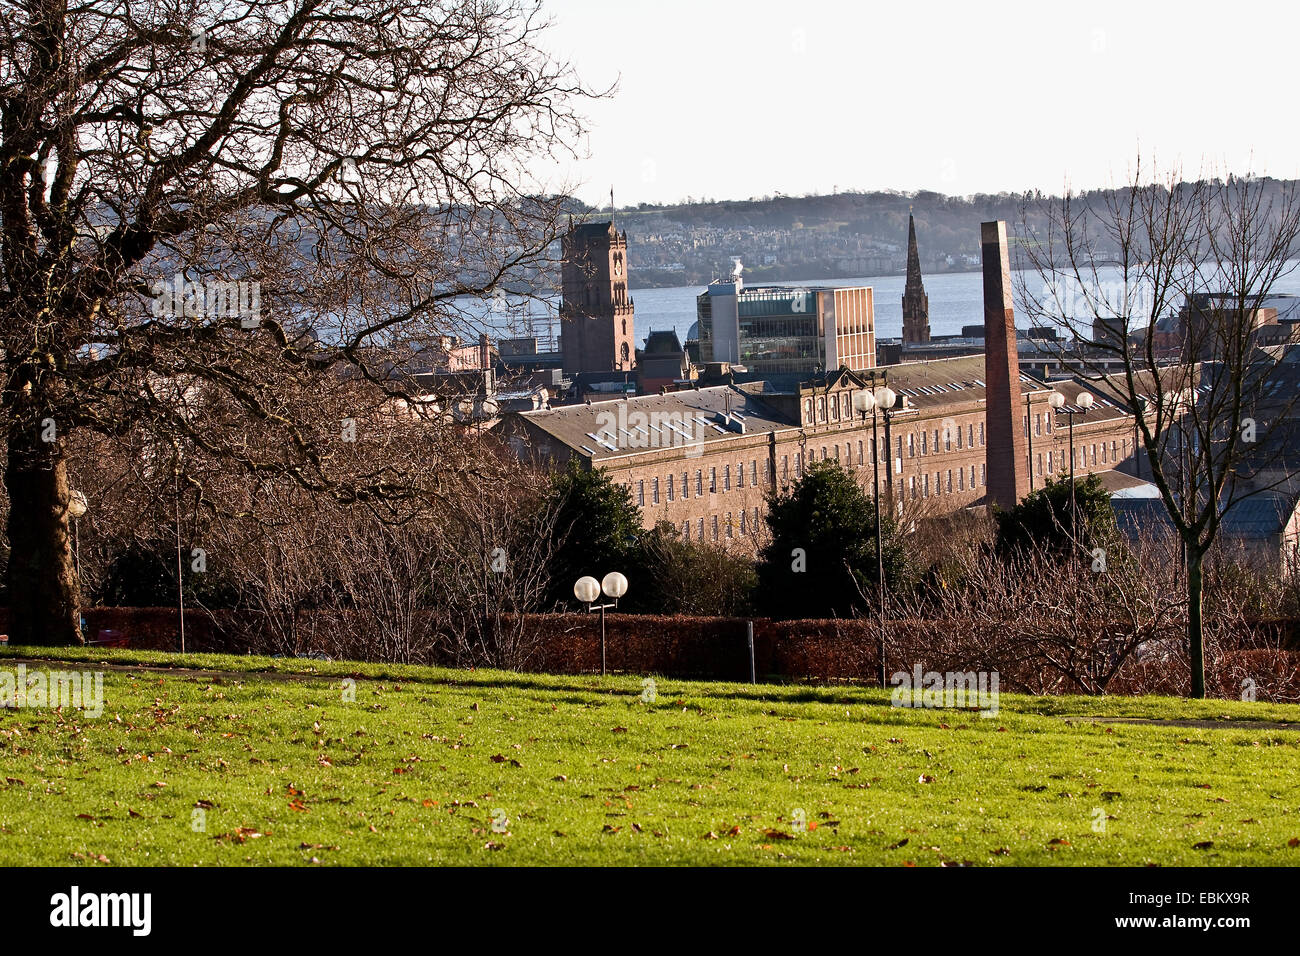 A view of The Tay Works was one of the longest textile mills in Britain owned by the Gilroy Brothers and Co in Dundee,UK - Stock Image